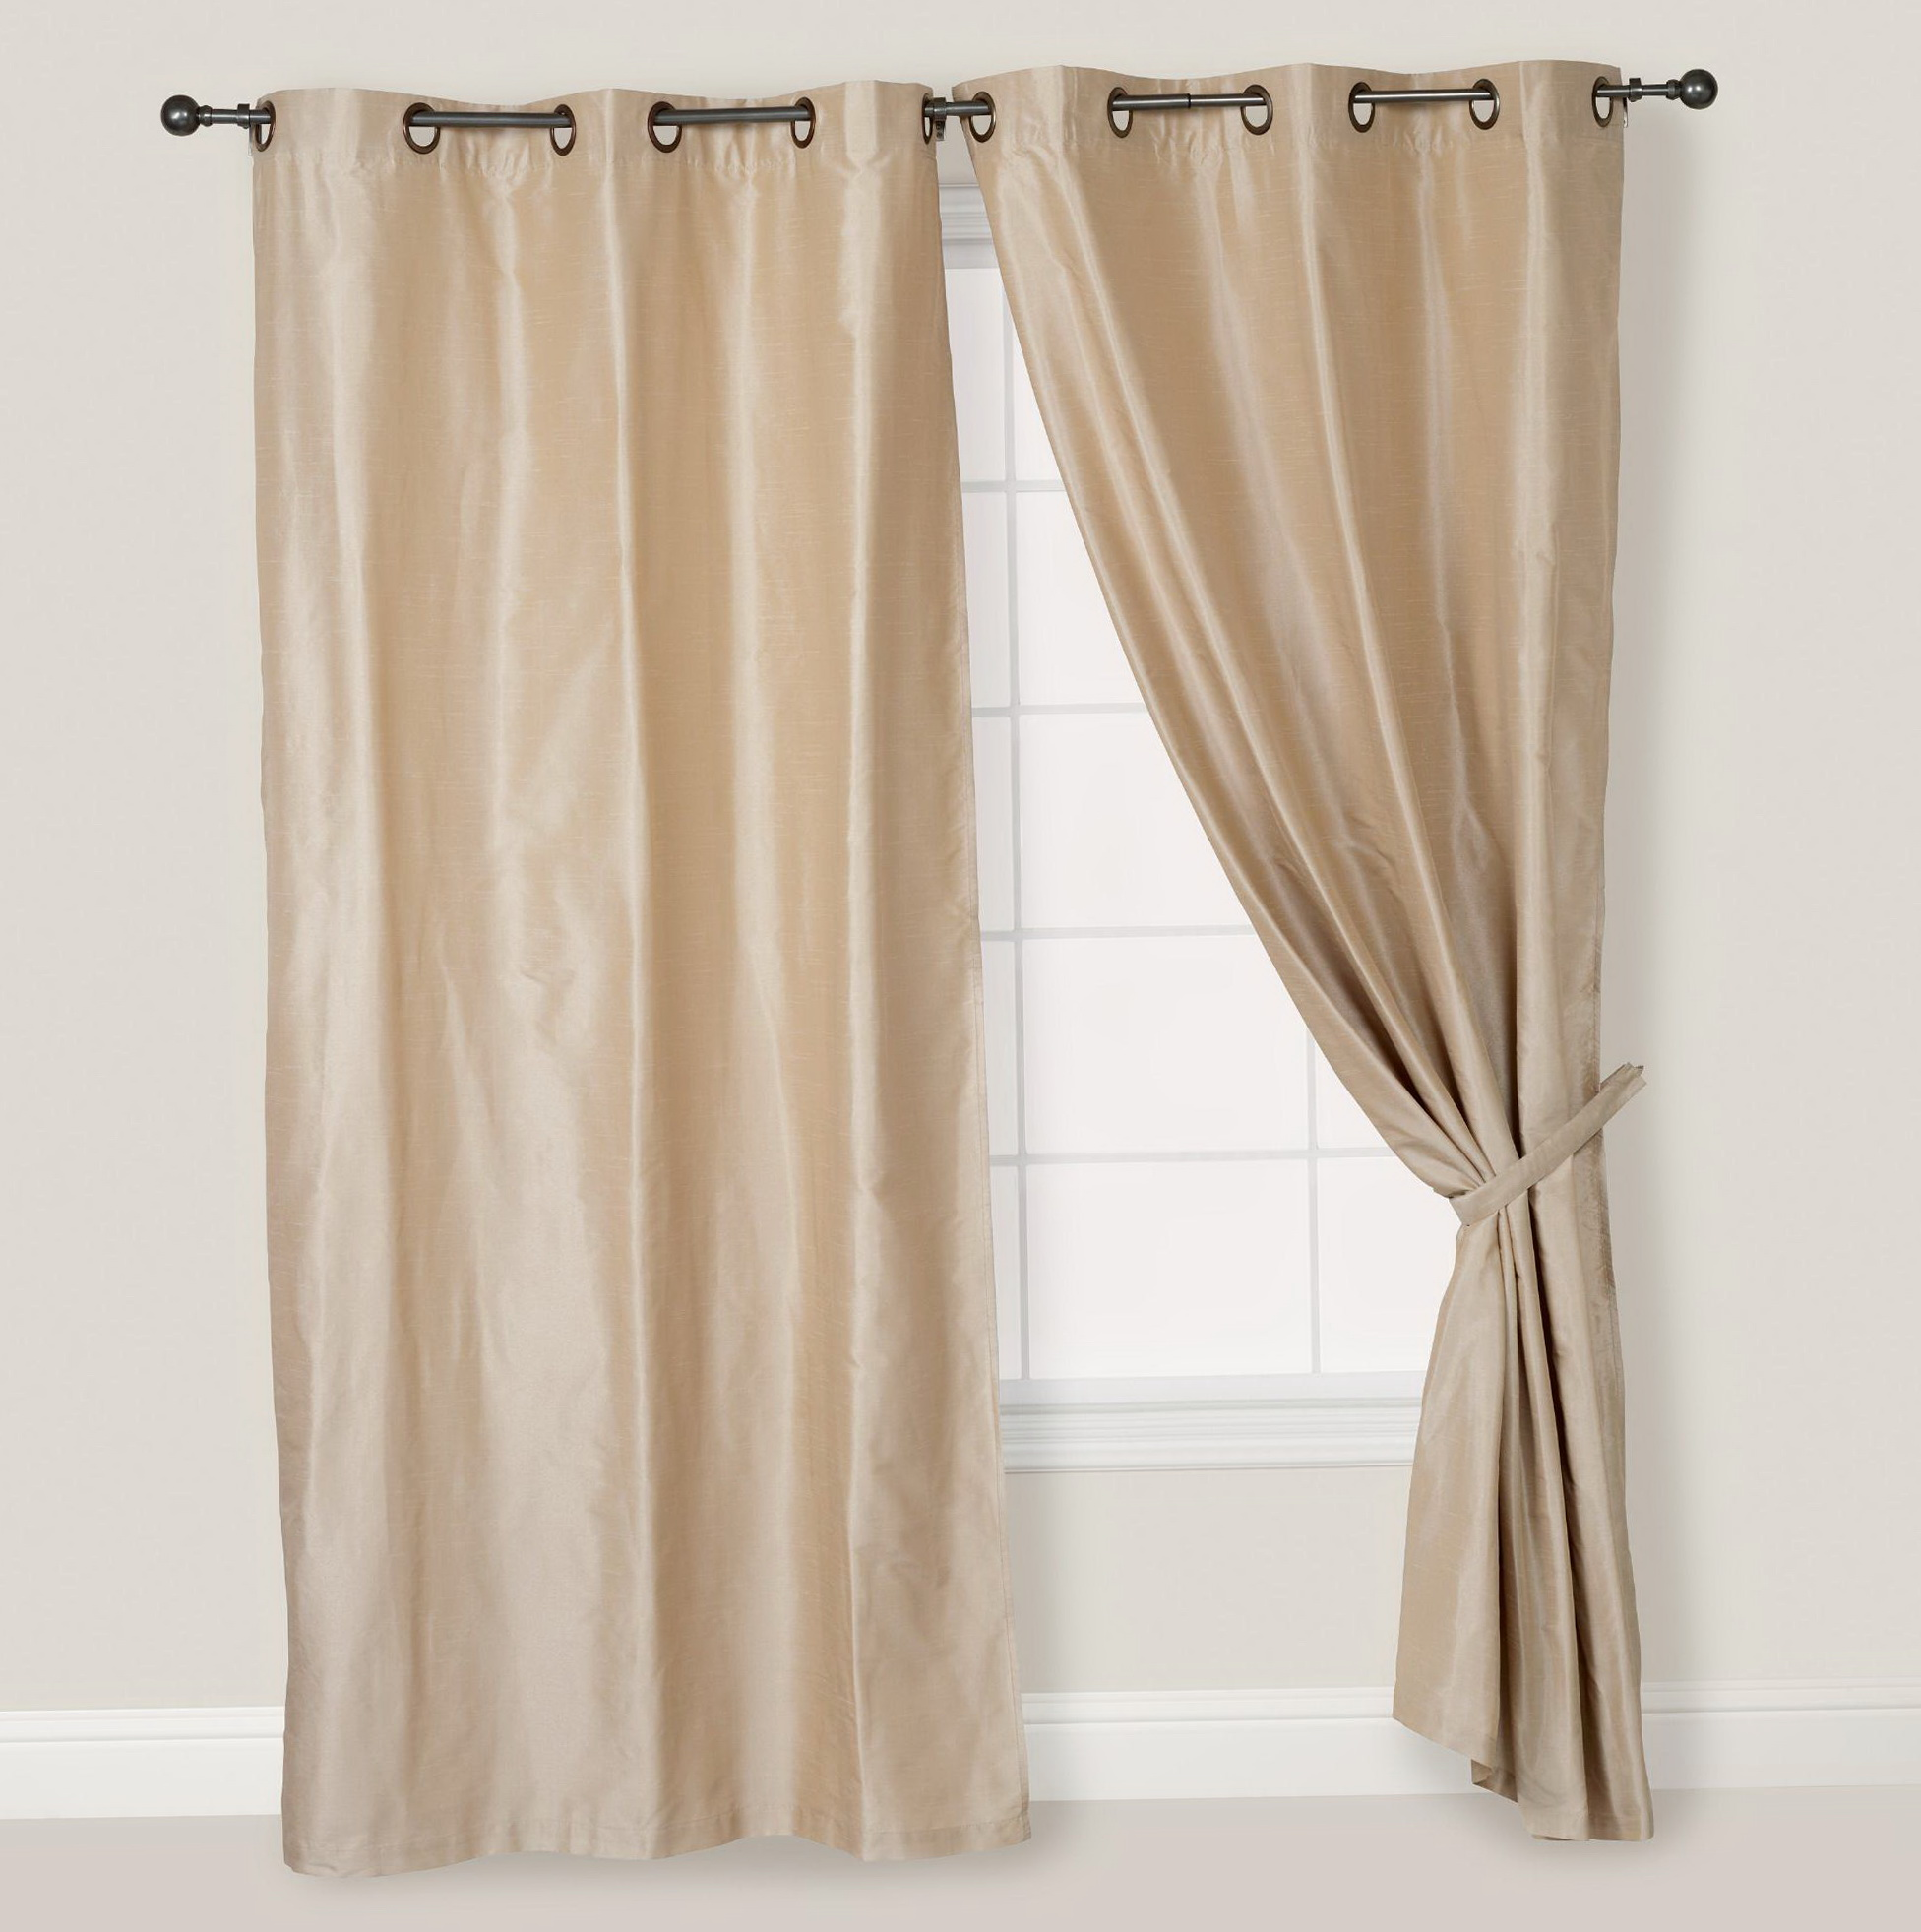 Curtains On Sale At Kmart Home Design Ideas